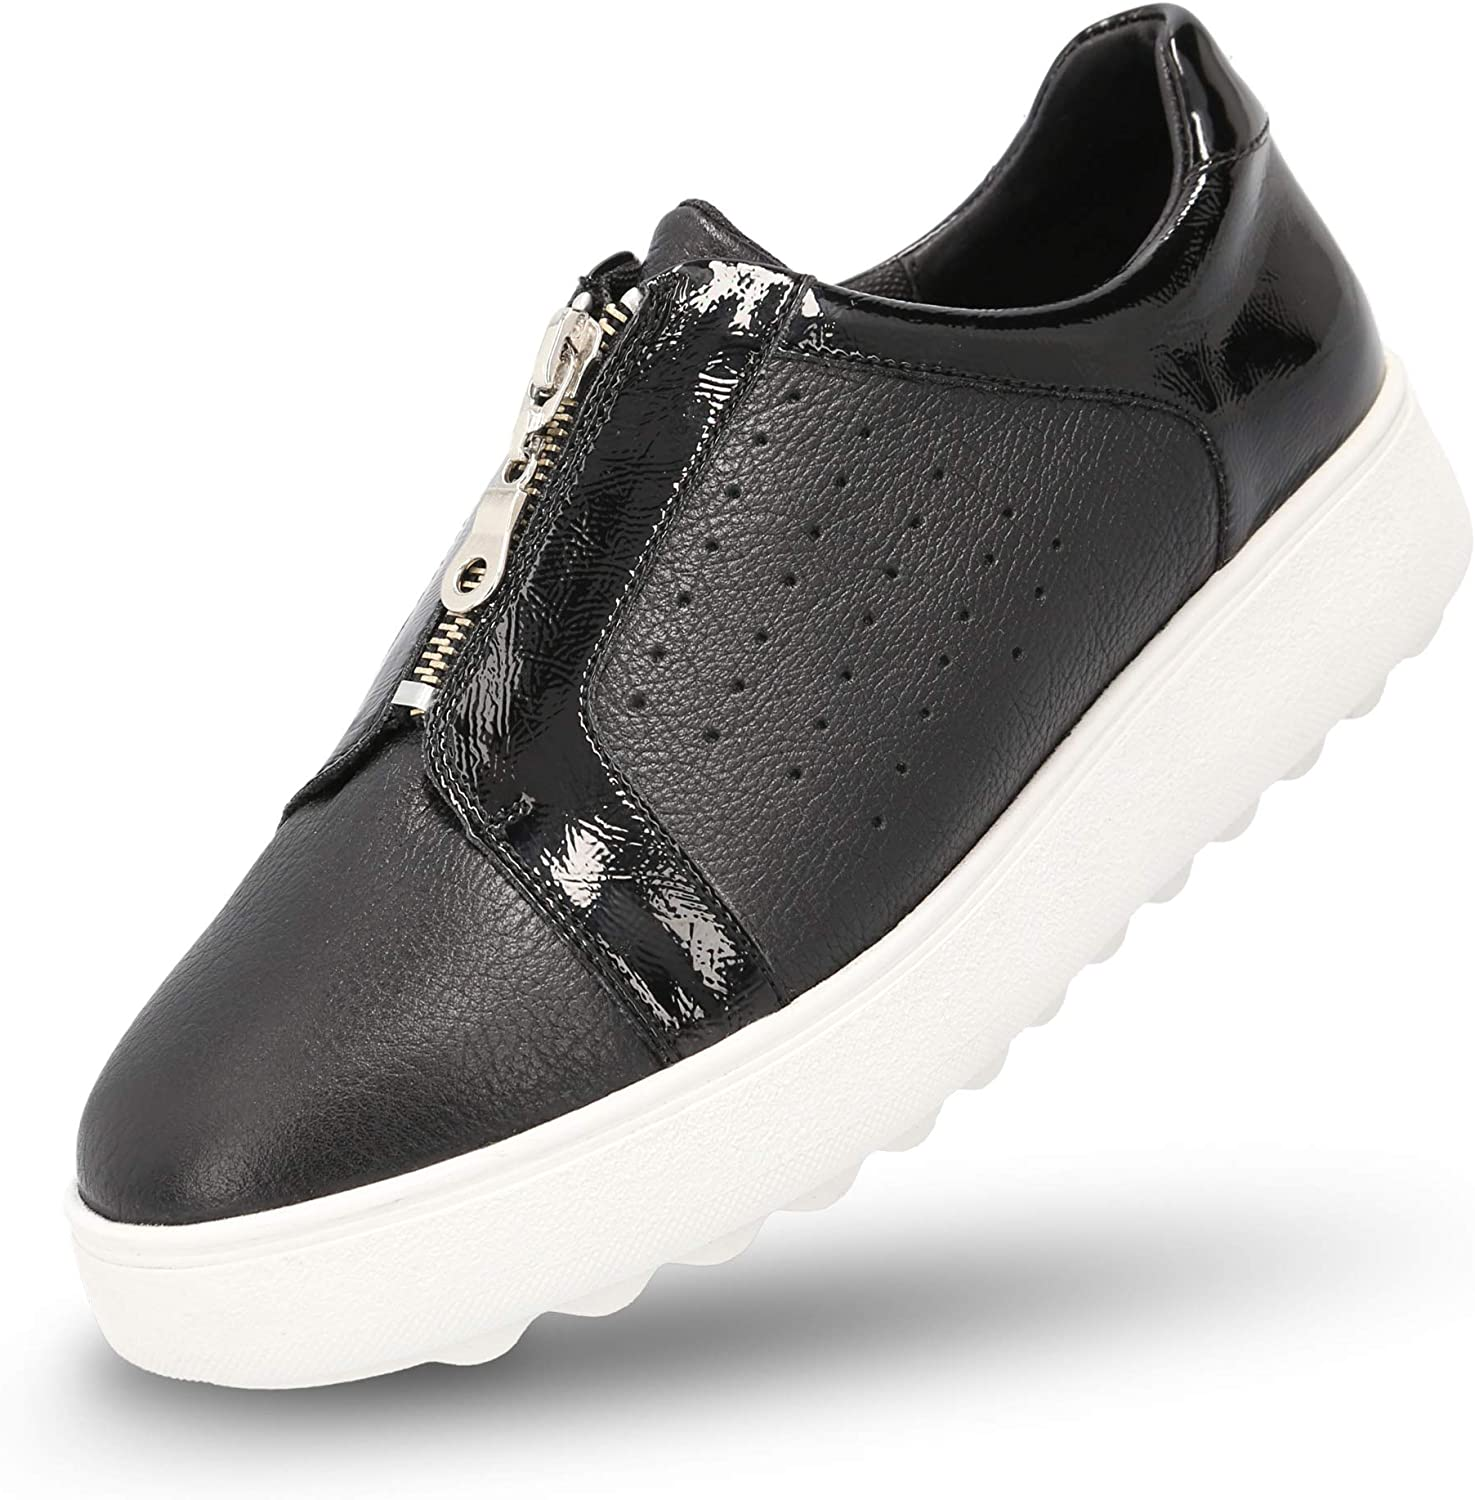 MANET Slip On Leather Sneakers